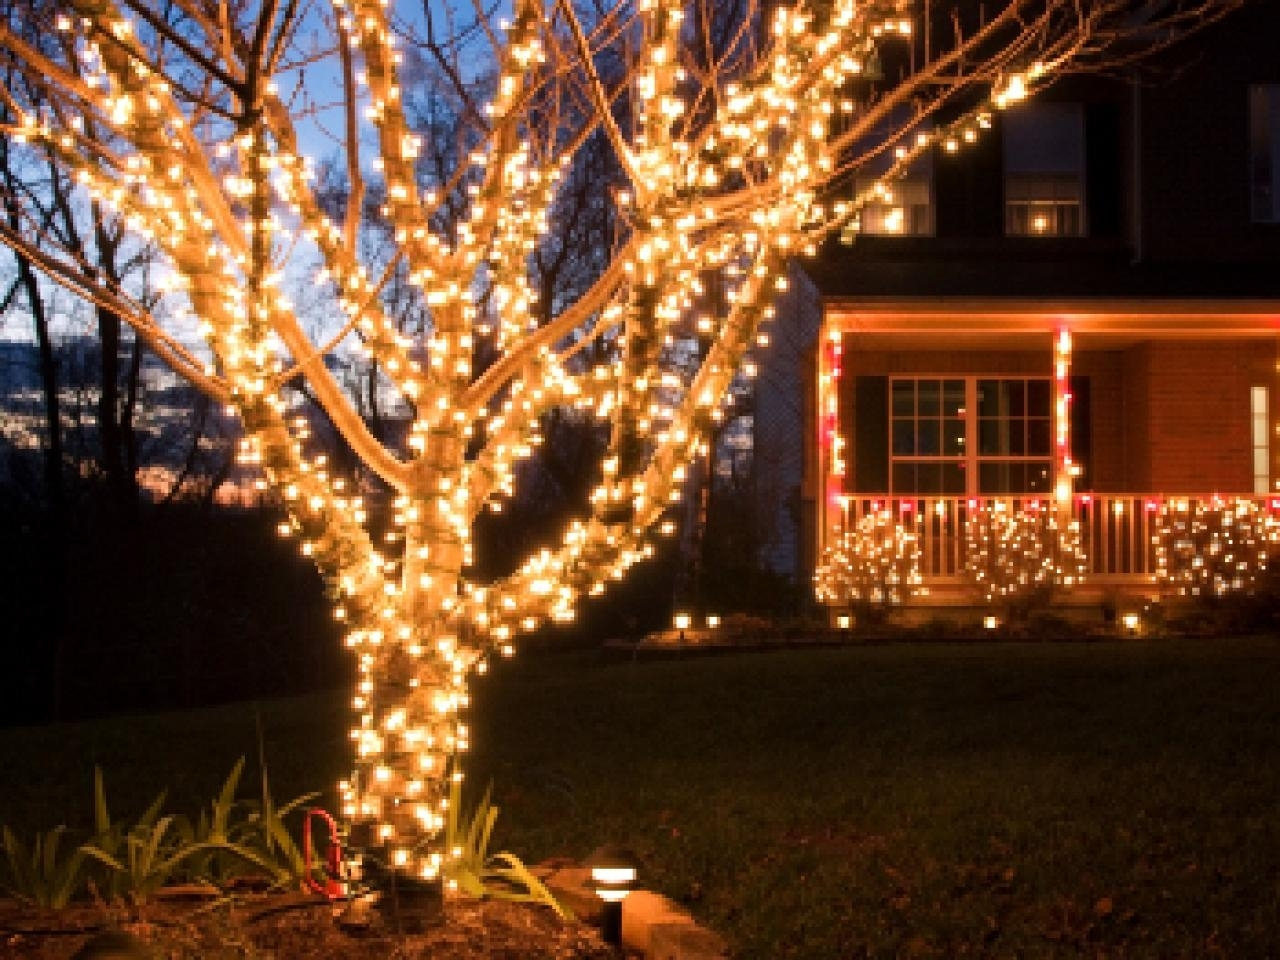 Buyers Guide For The Best Outdoor Christmas Lighting | Diy Regarding Outdoor Hanging Tree Lights (View 14 of 15)